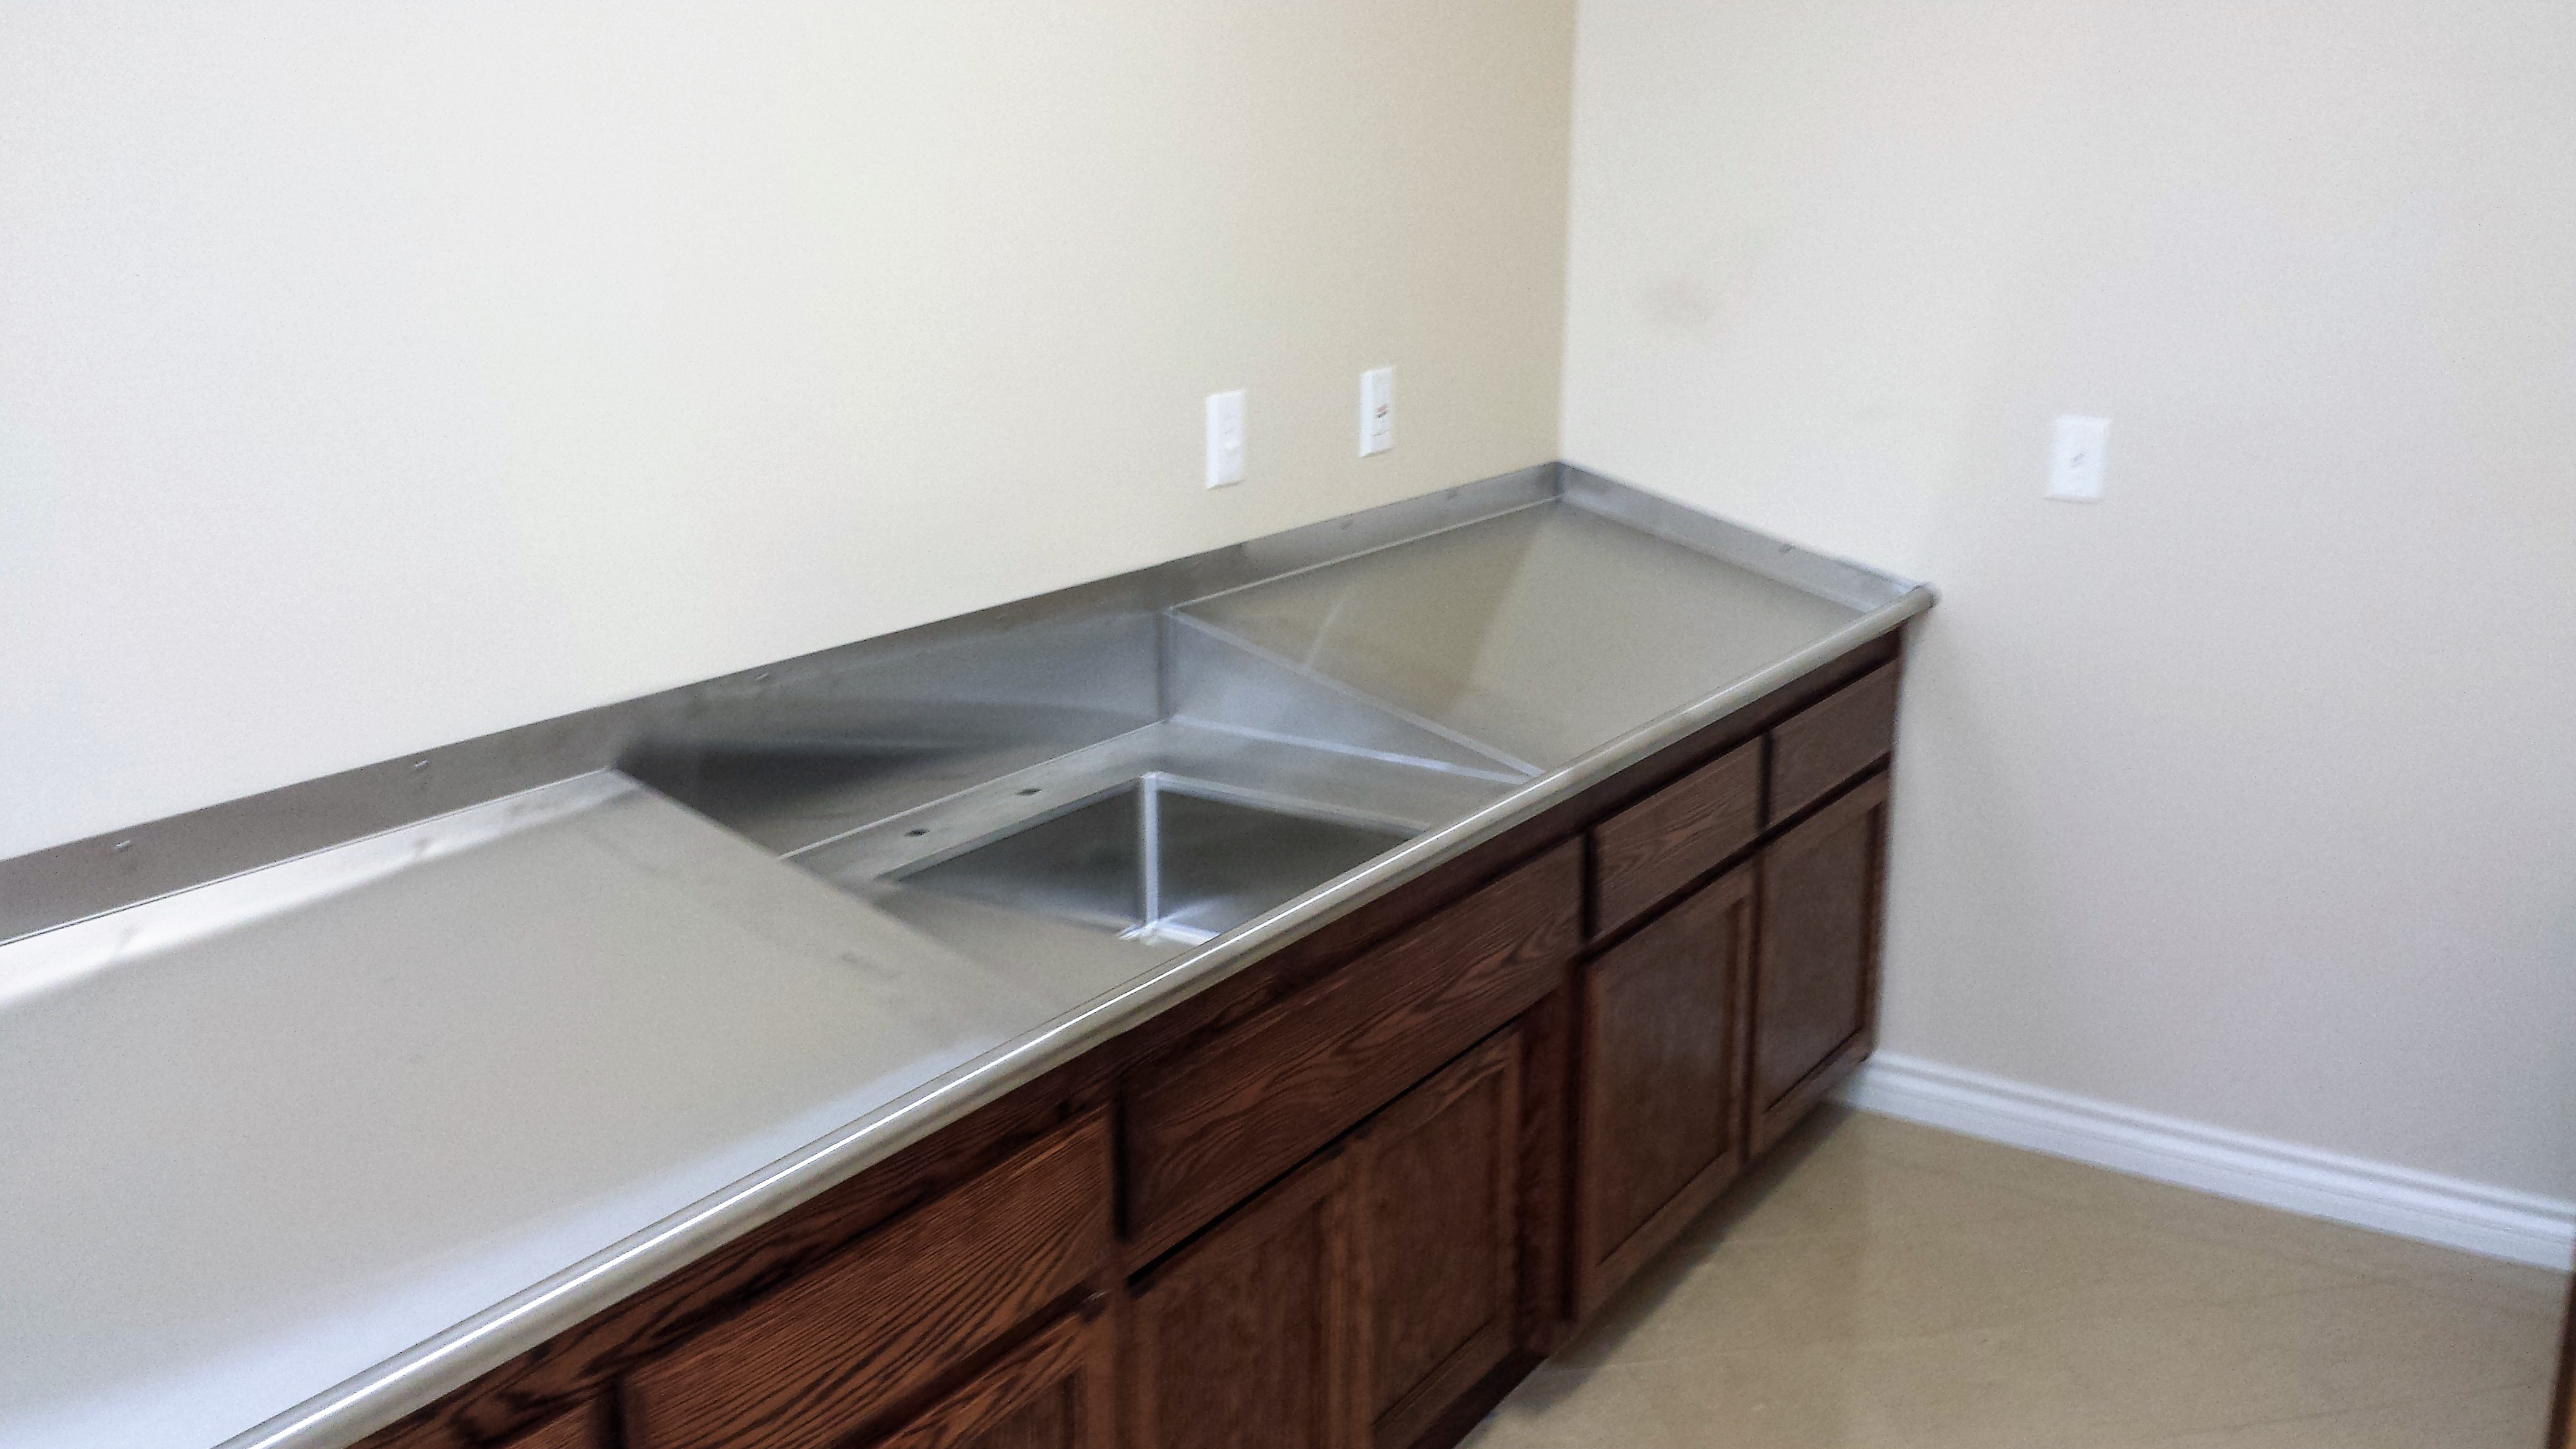 Laboratory Cabinetry Perfection Stainless 1